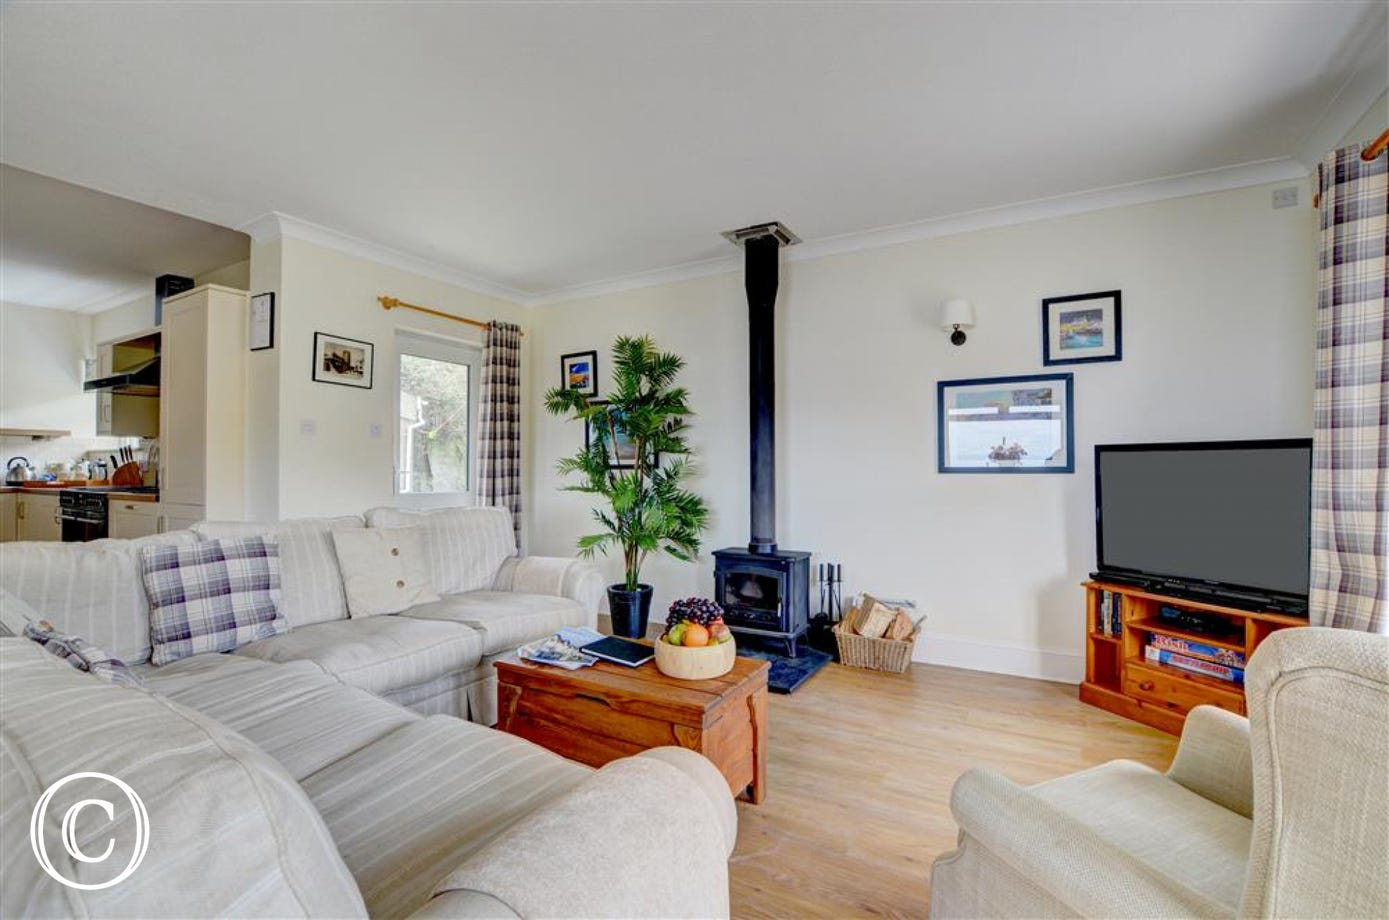 Large TV and cosy woodburner in the seating area